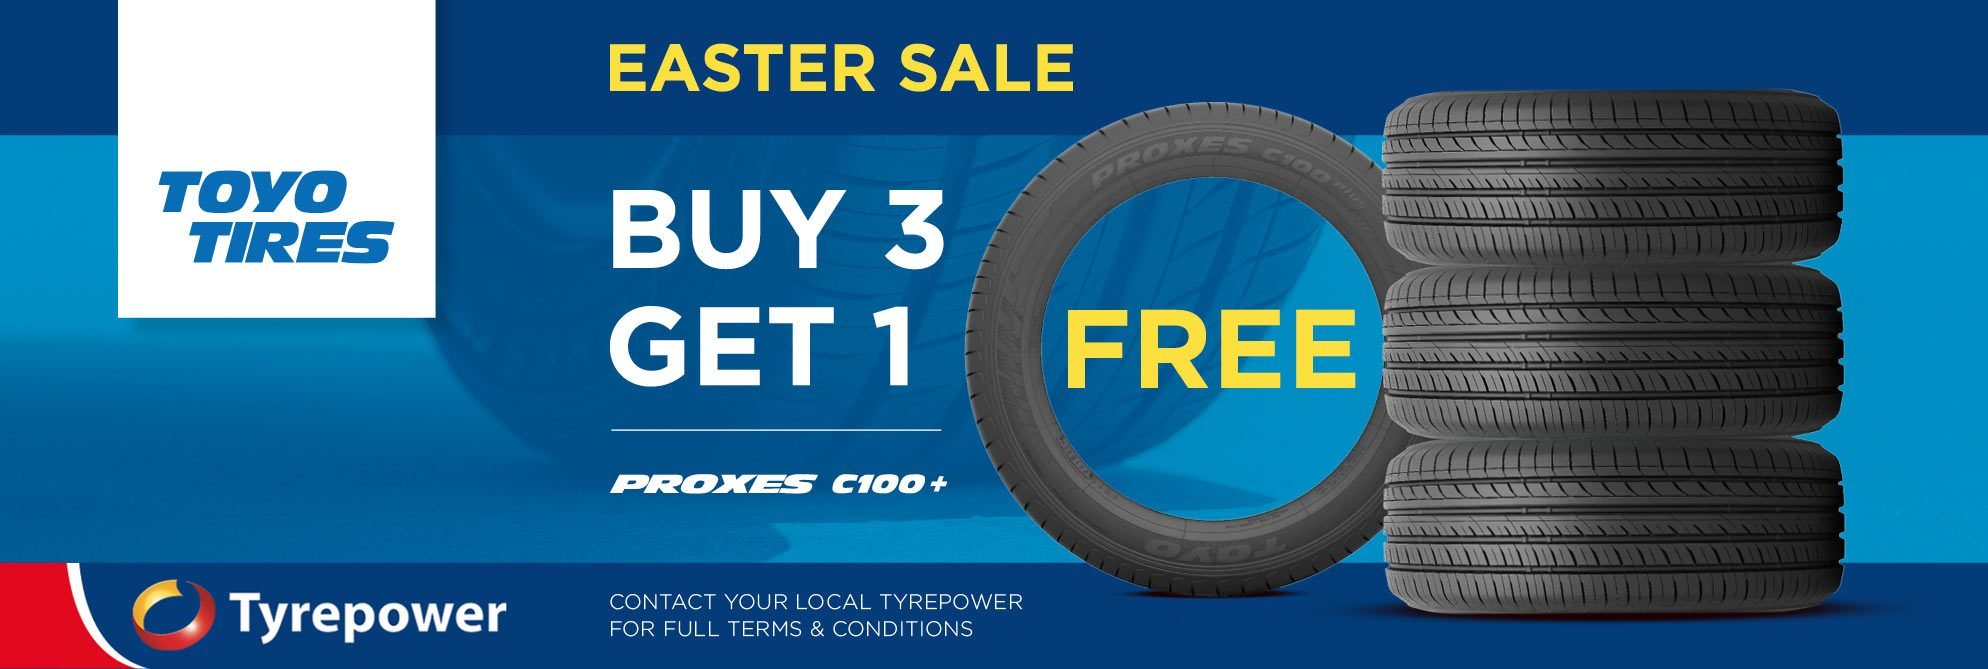 Buy 3 Get 1 Toyo Proxes C100 Free offer